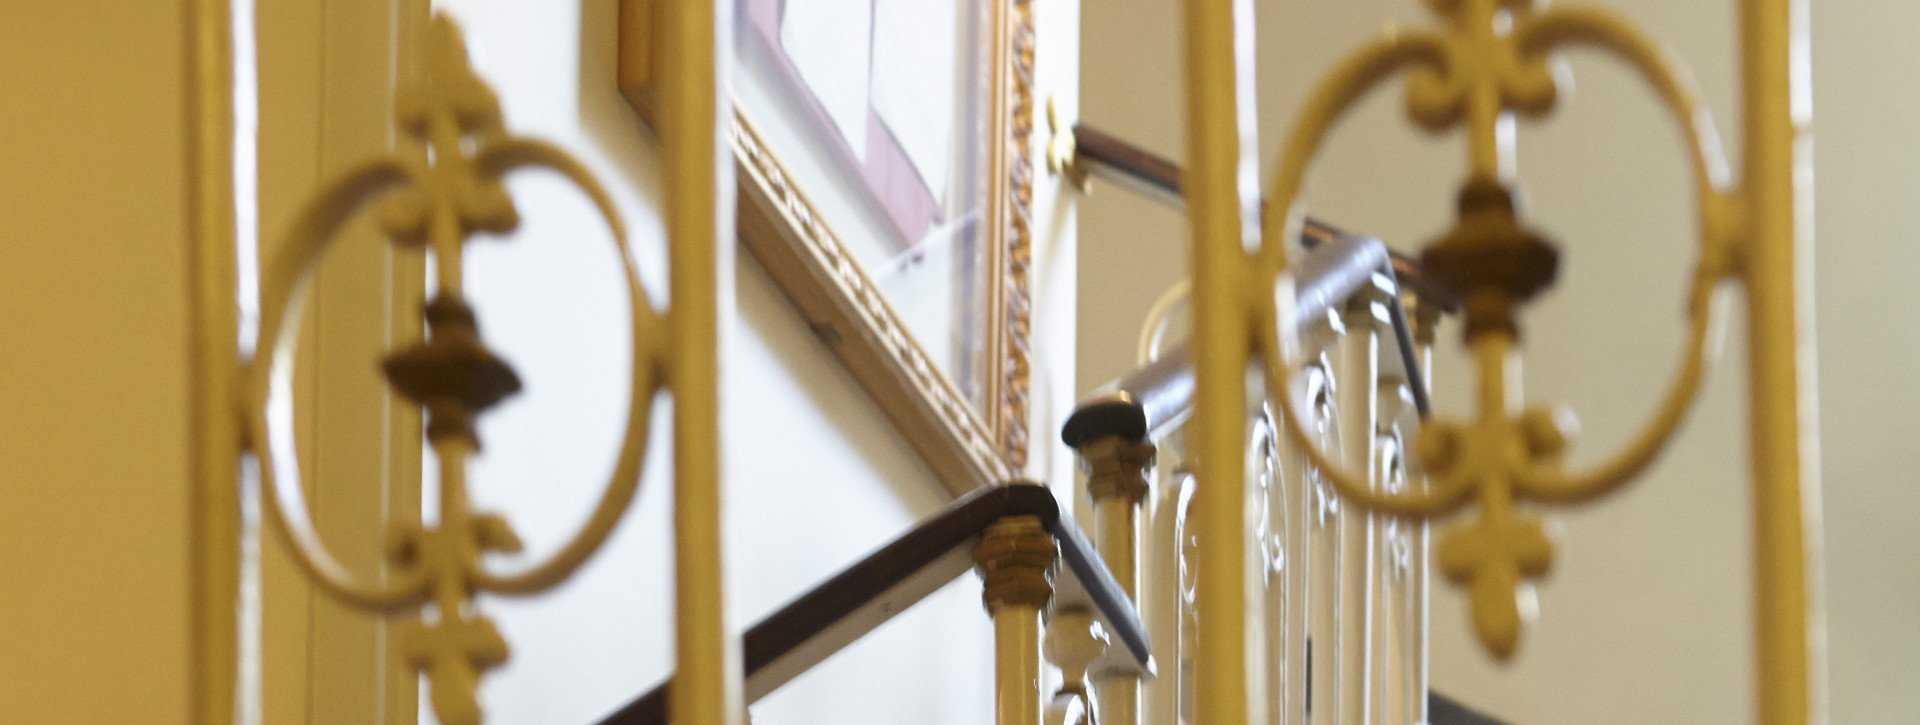 Golden stairwell in International au Lac Historic Lakeside Hotel